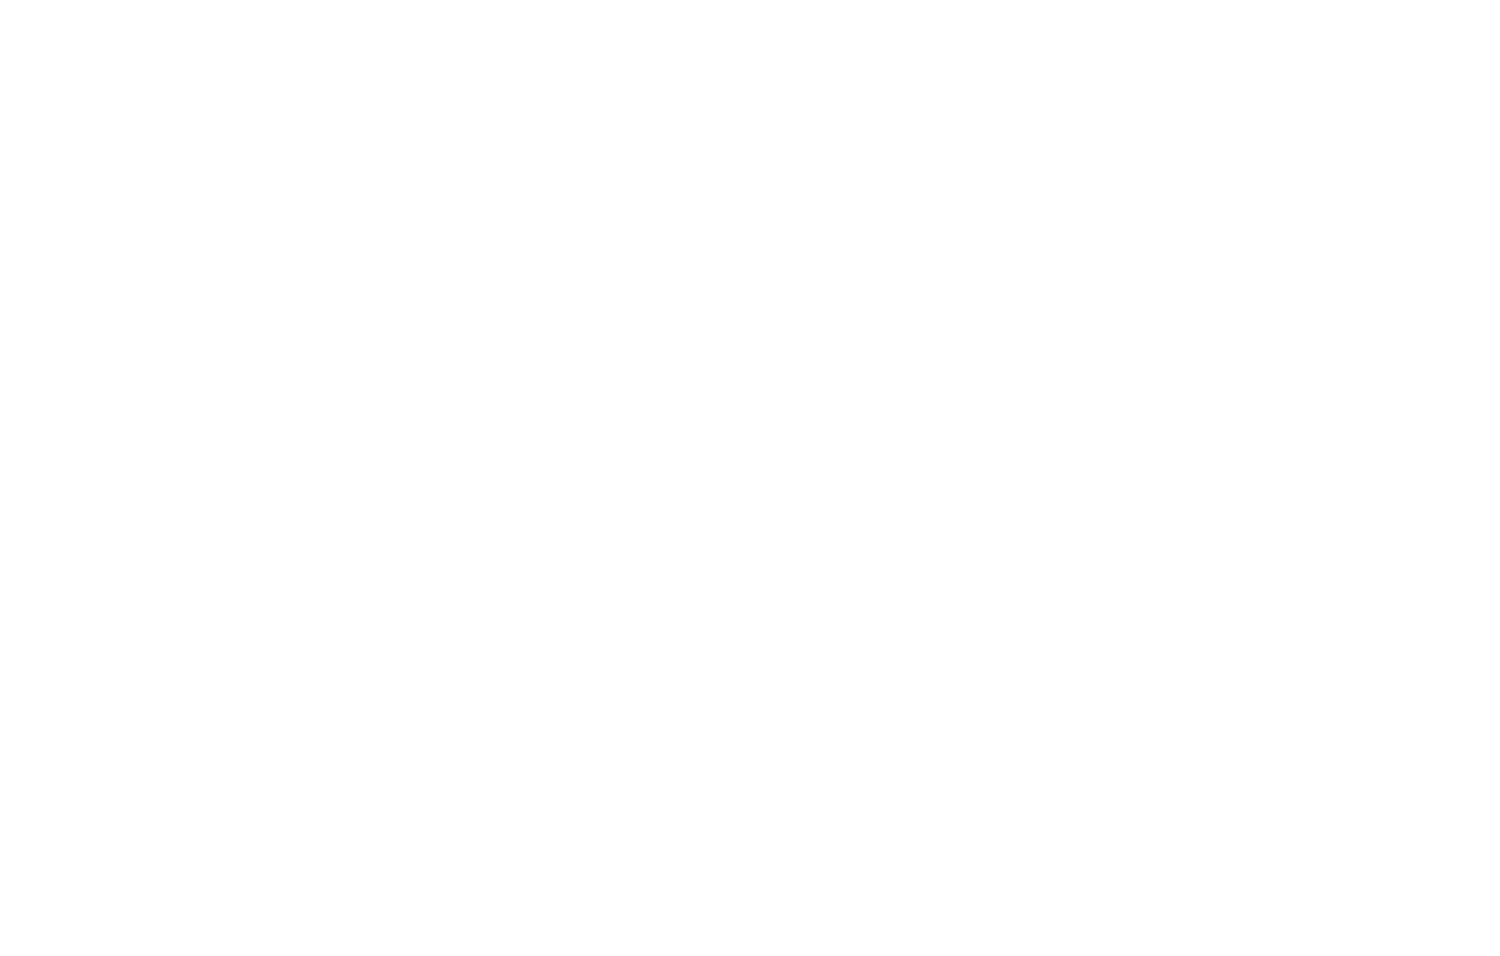 Kelly Owen